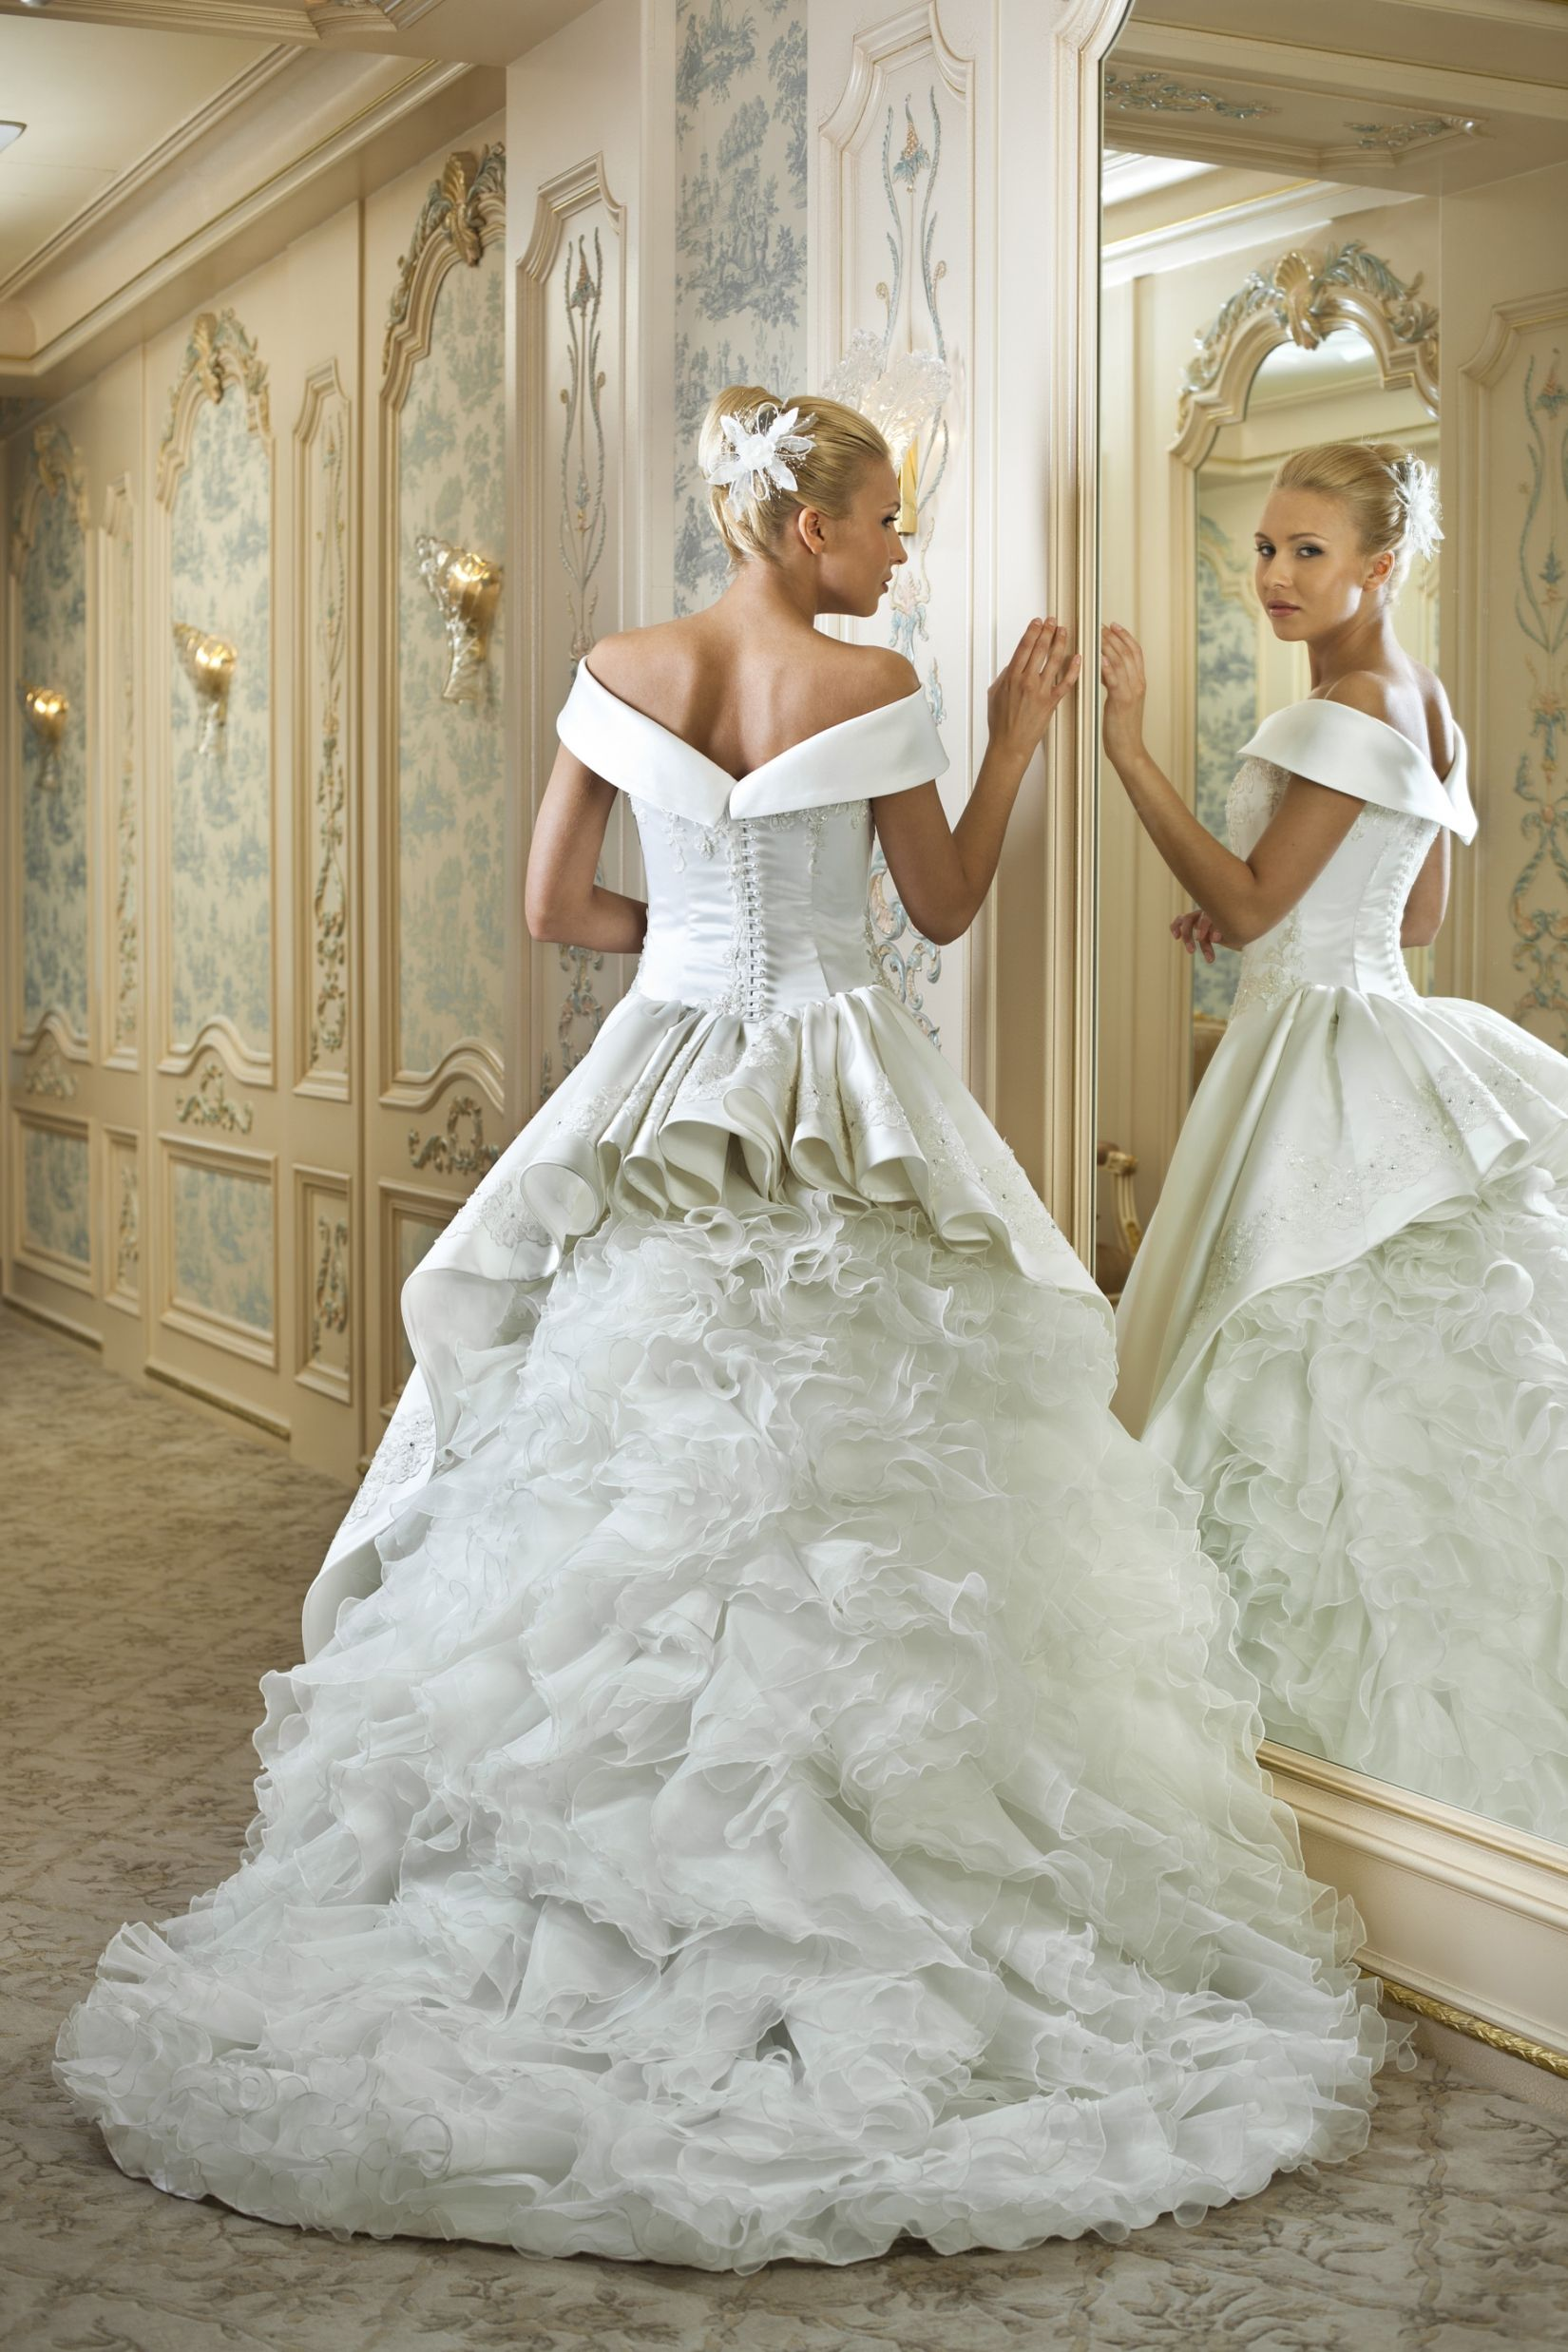 The exquisite wedding dress shop in london wedding dresses the exquisite wedding dress shop in london wedding dresses collection the angel of flowers ombrellifo Image collections